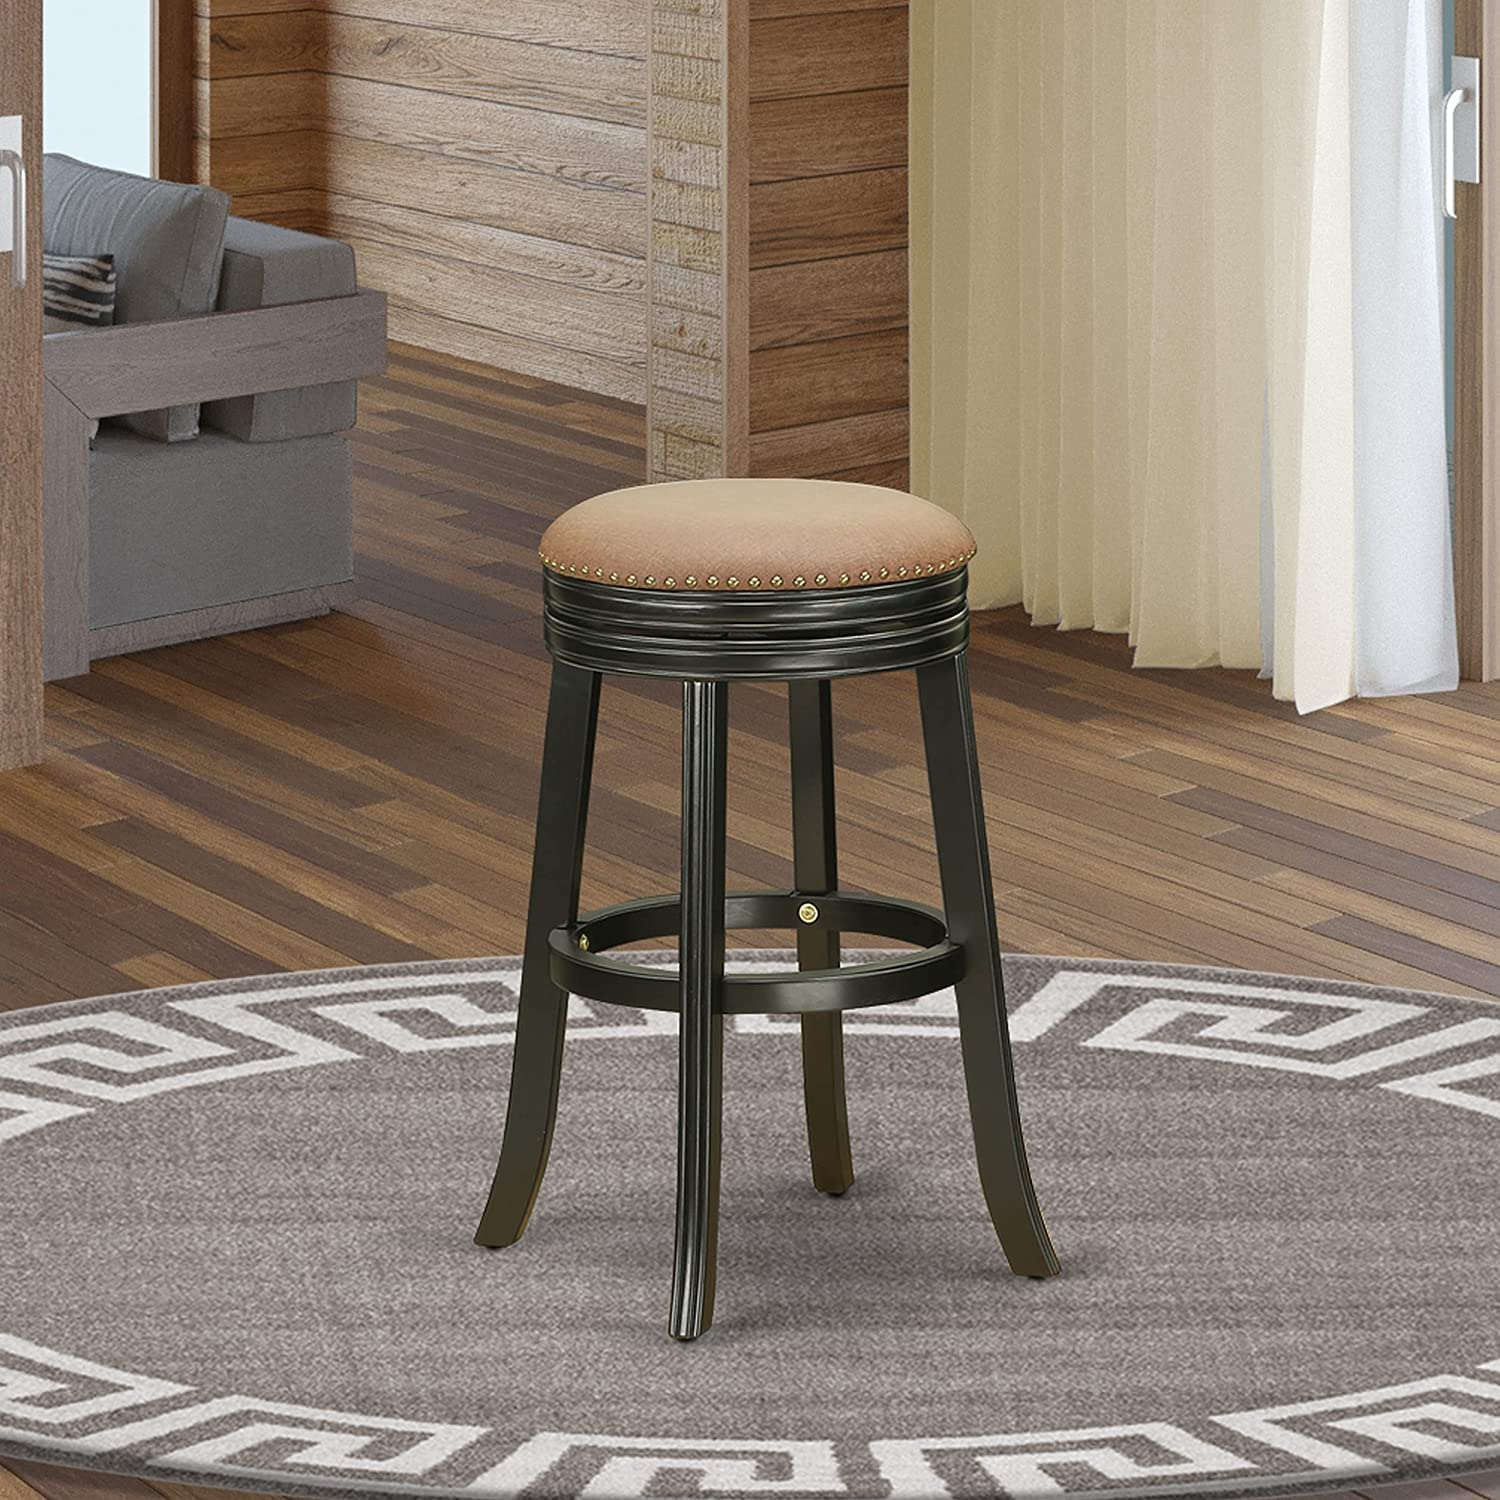 East West Furniture Devers Swivel Backless Barstool 30'' Seat Height With Black Leg And F12-12 Pu Leather Brown Roast